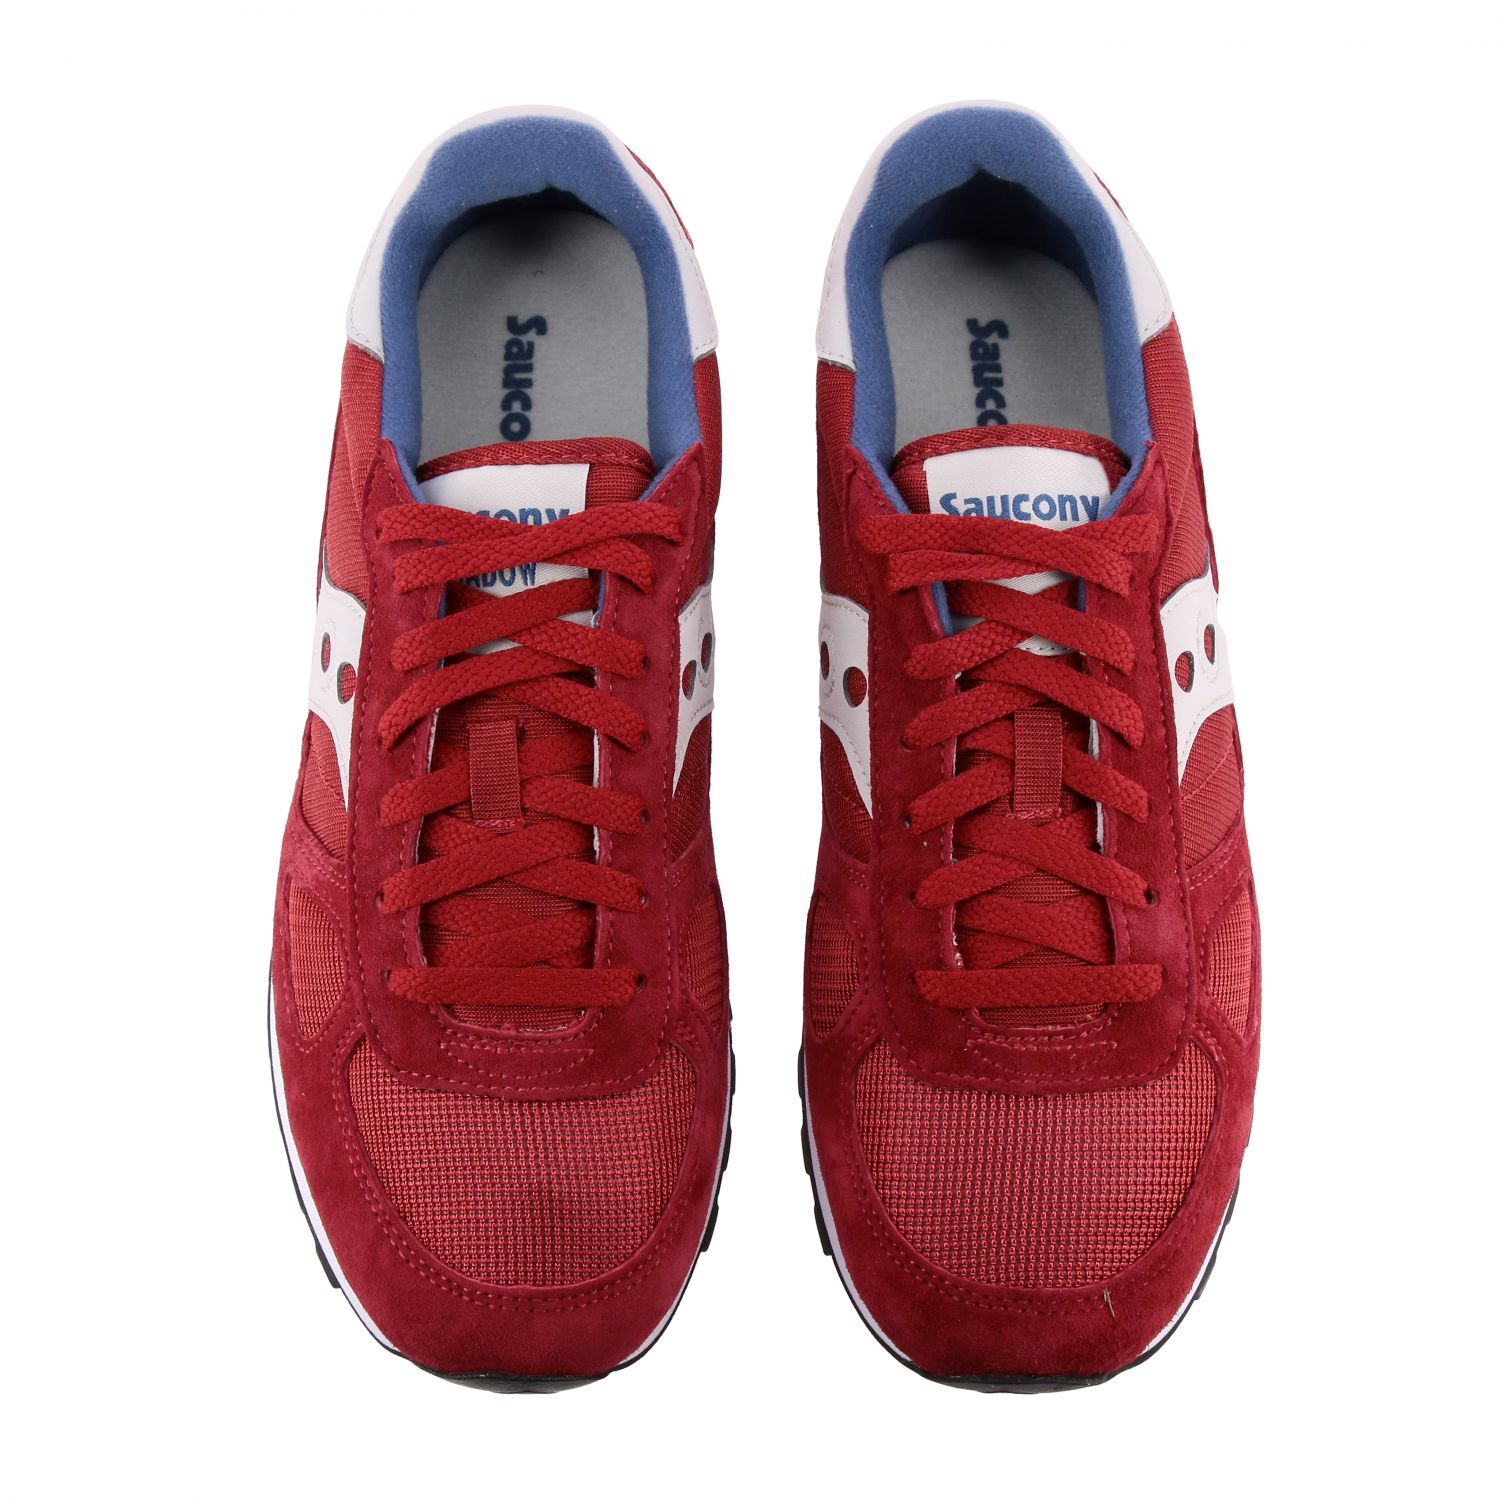 Trainers men Saucony red 3